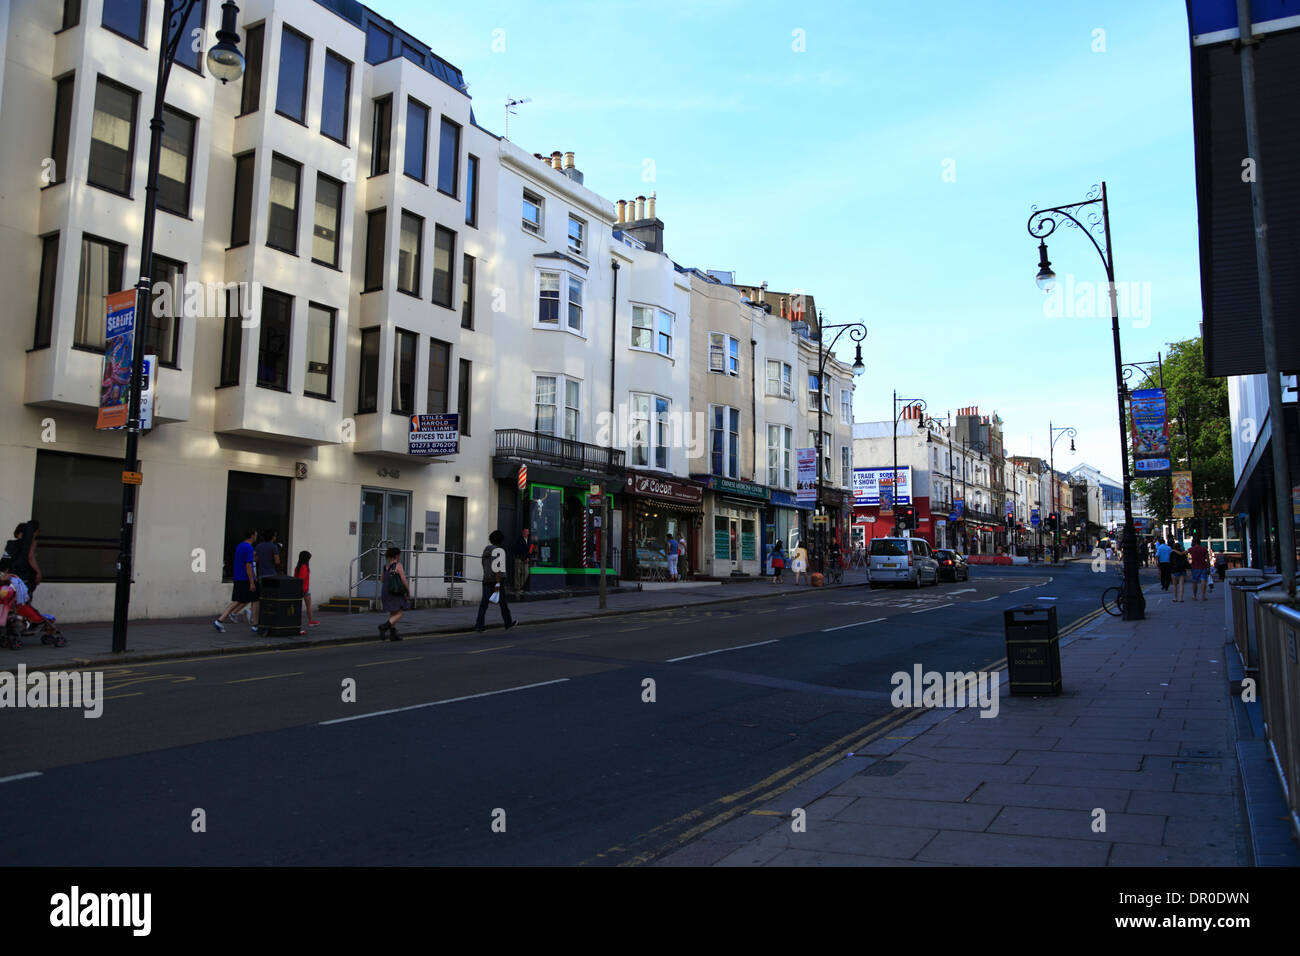 People walk past buildings in the shade along Queens Road in Brighton, East Sussex, UK, on a early summer's evening. Stock Photo